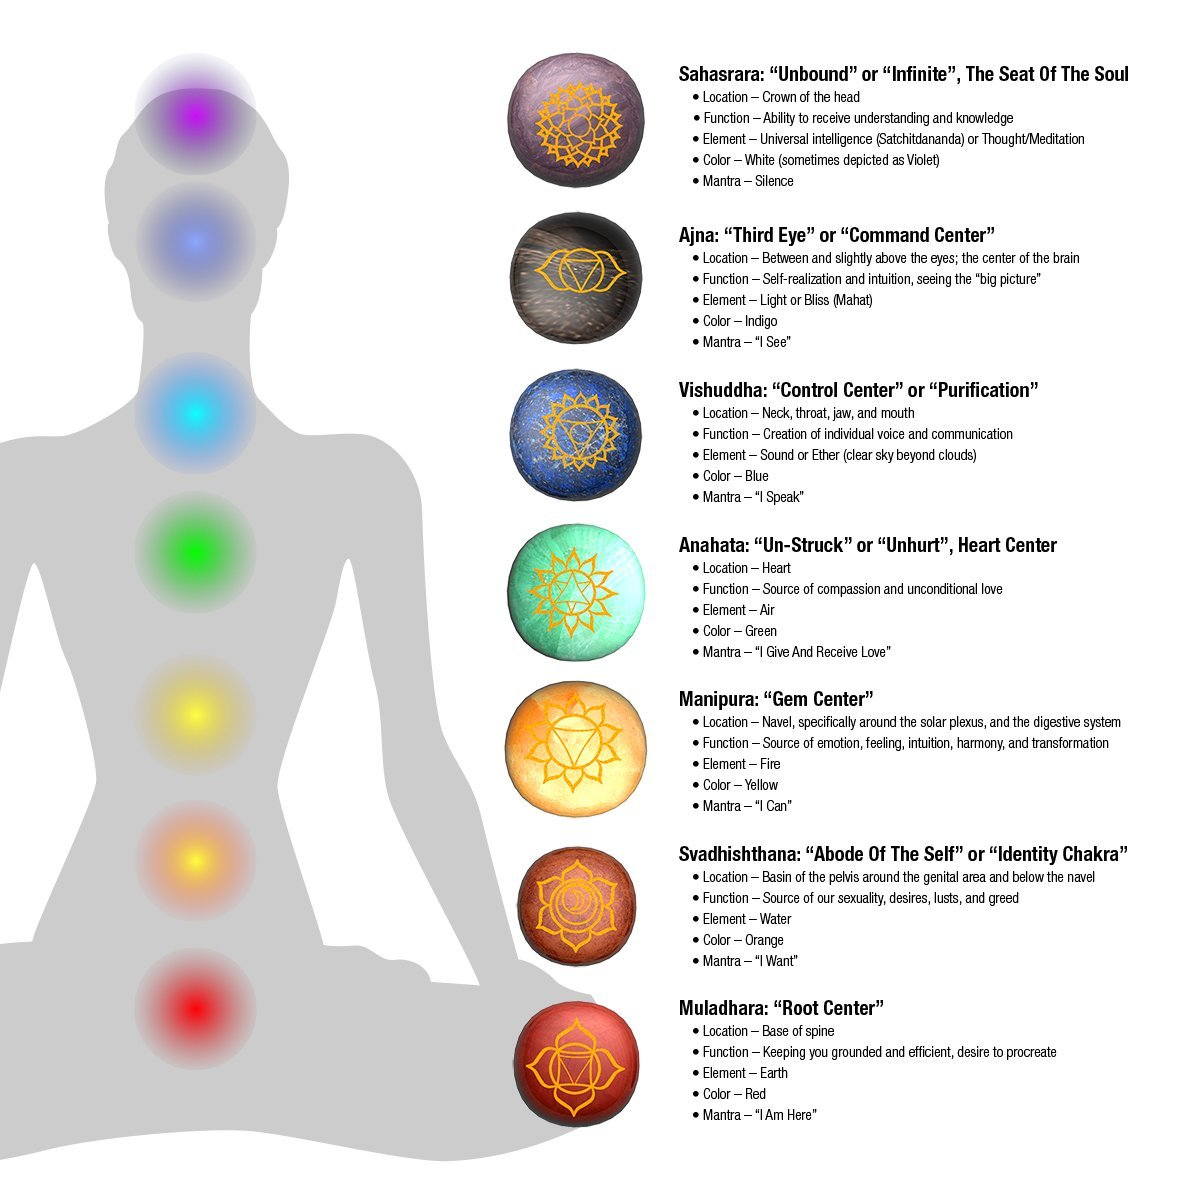 solar plexus and healing chakra crystals The third wheel of energy in our body, the solar plexus chakra, is located around the navel, just below the rib cage.